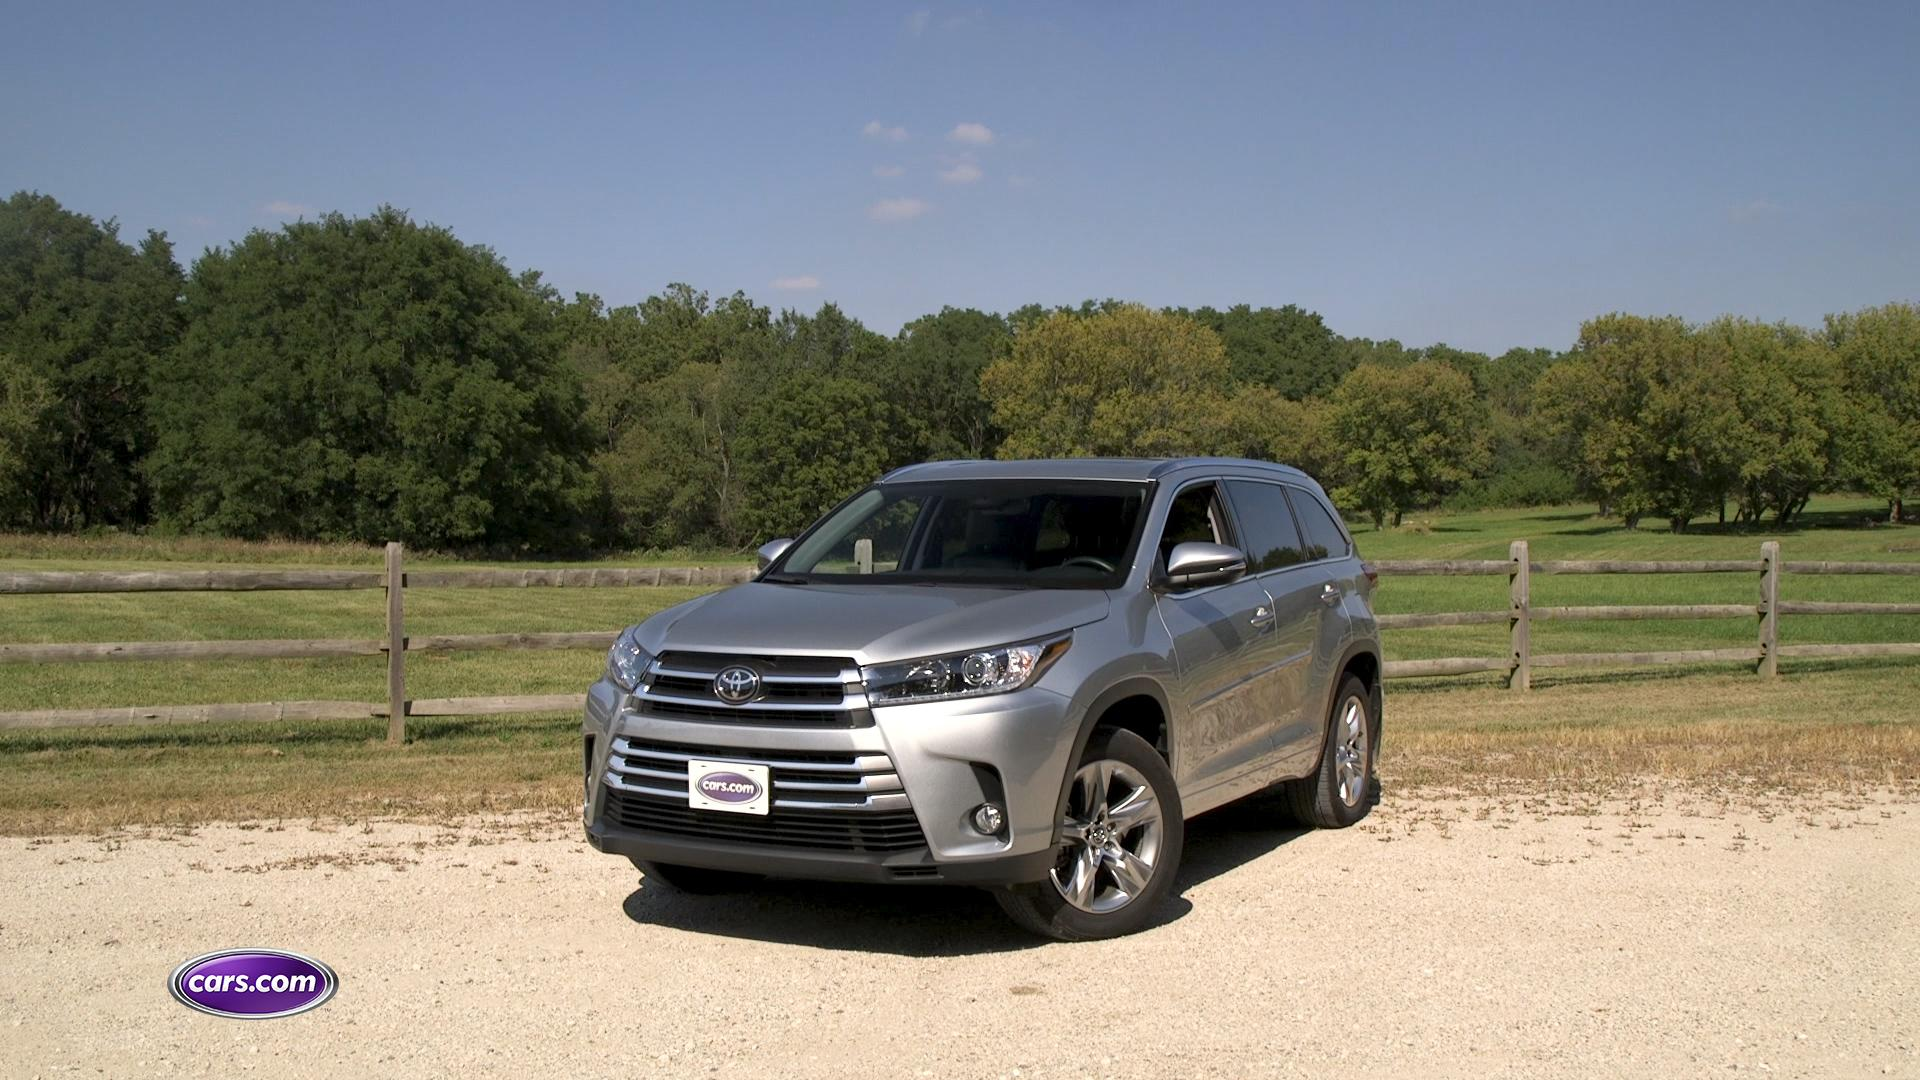 2017 Toyota Highlander Expert Reviews Specs and s